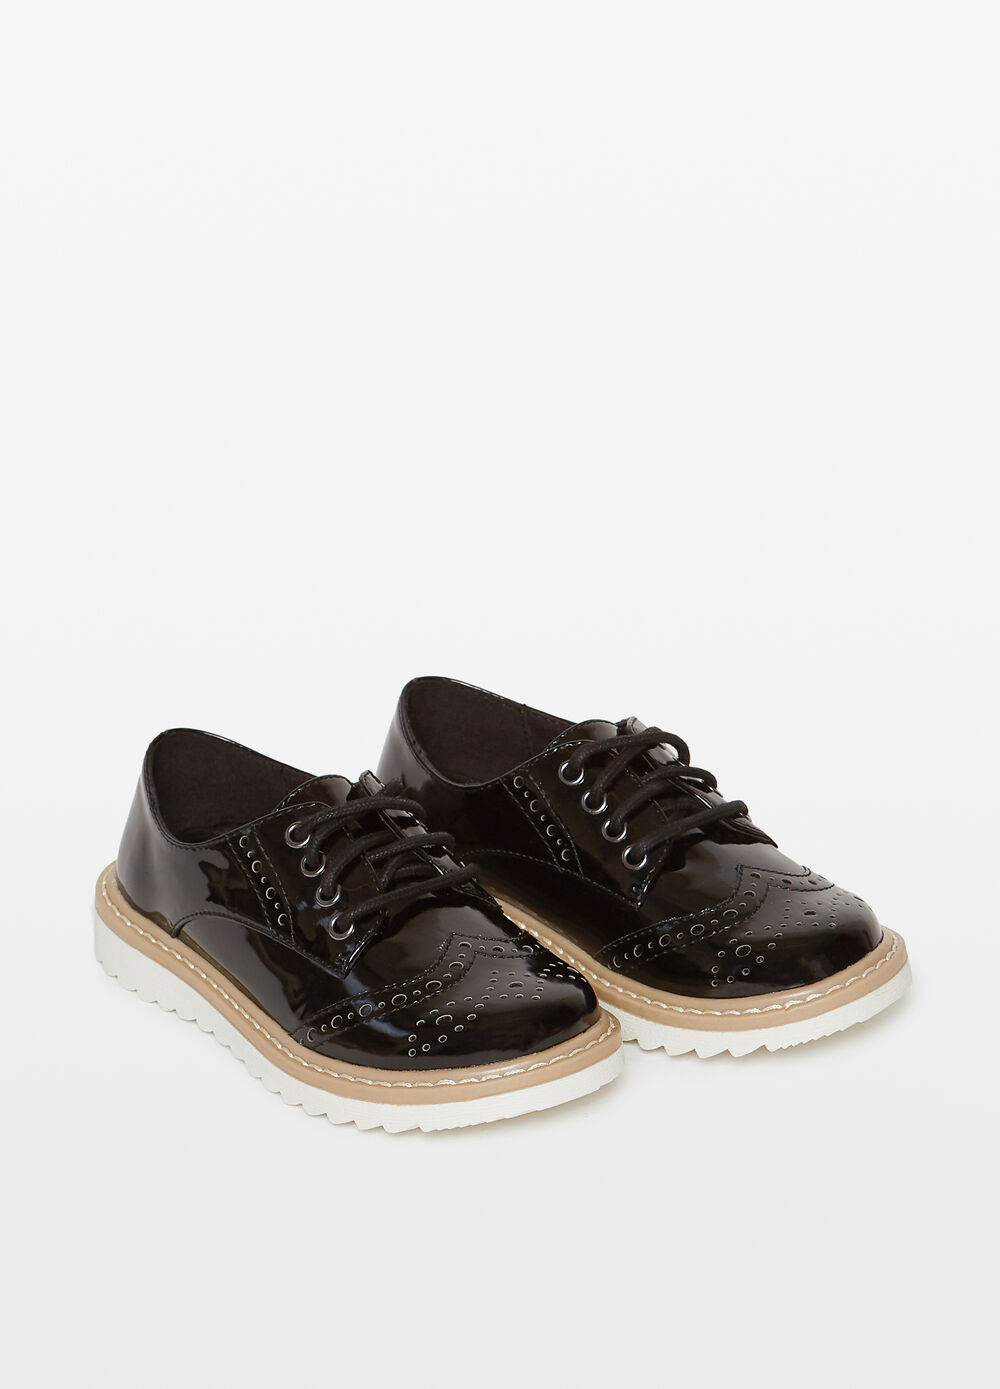 Shiny openwork lace-up shoes